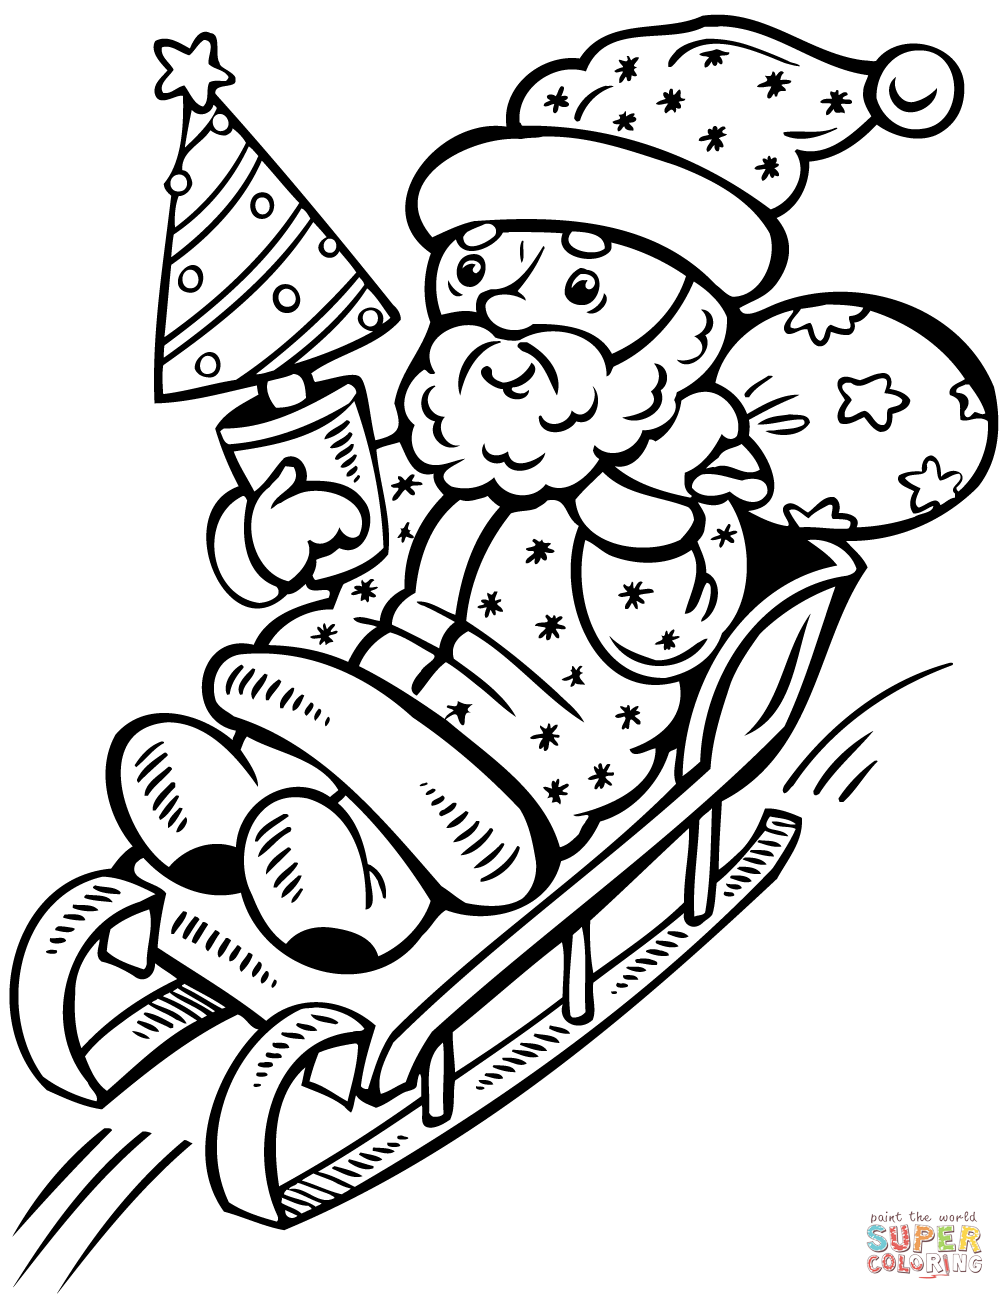 Coloring Santa Claus With On Sleigh Christmas Tree Page Free